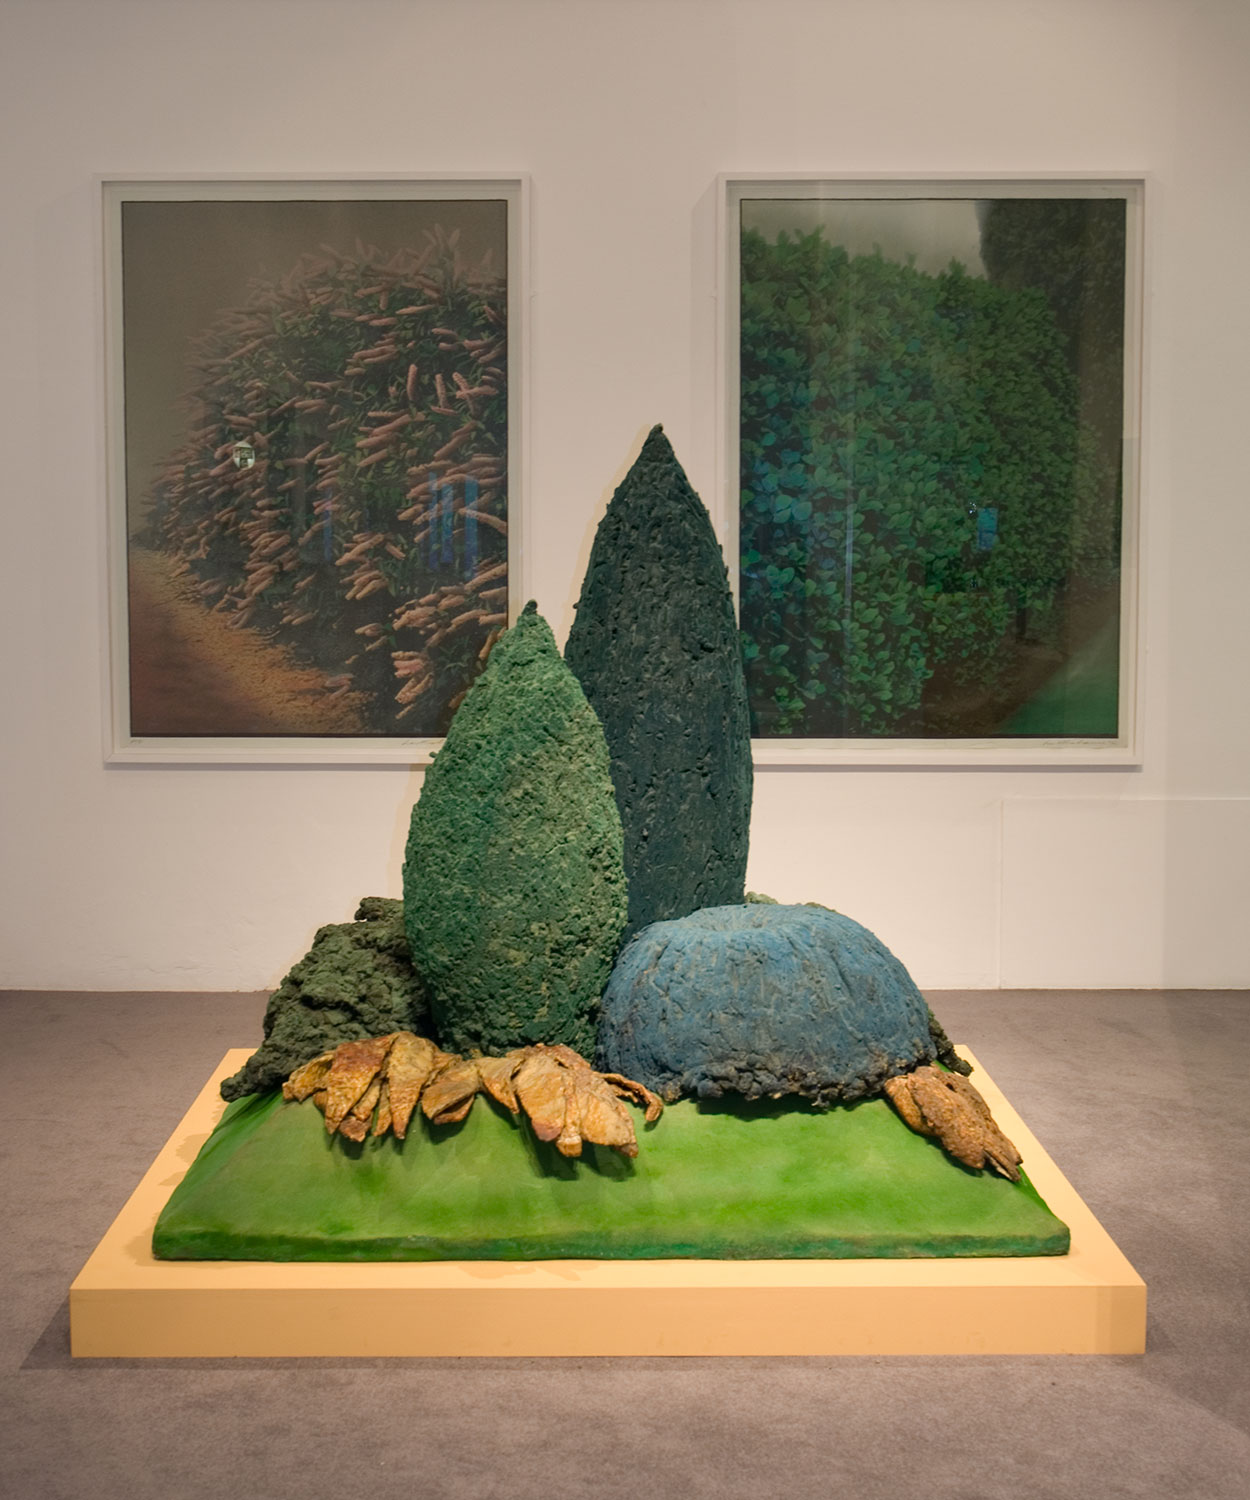 Installation view of By Leafy Ways: Early works by Ivor Abrahams 6